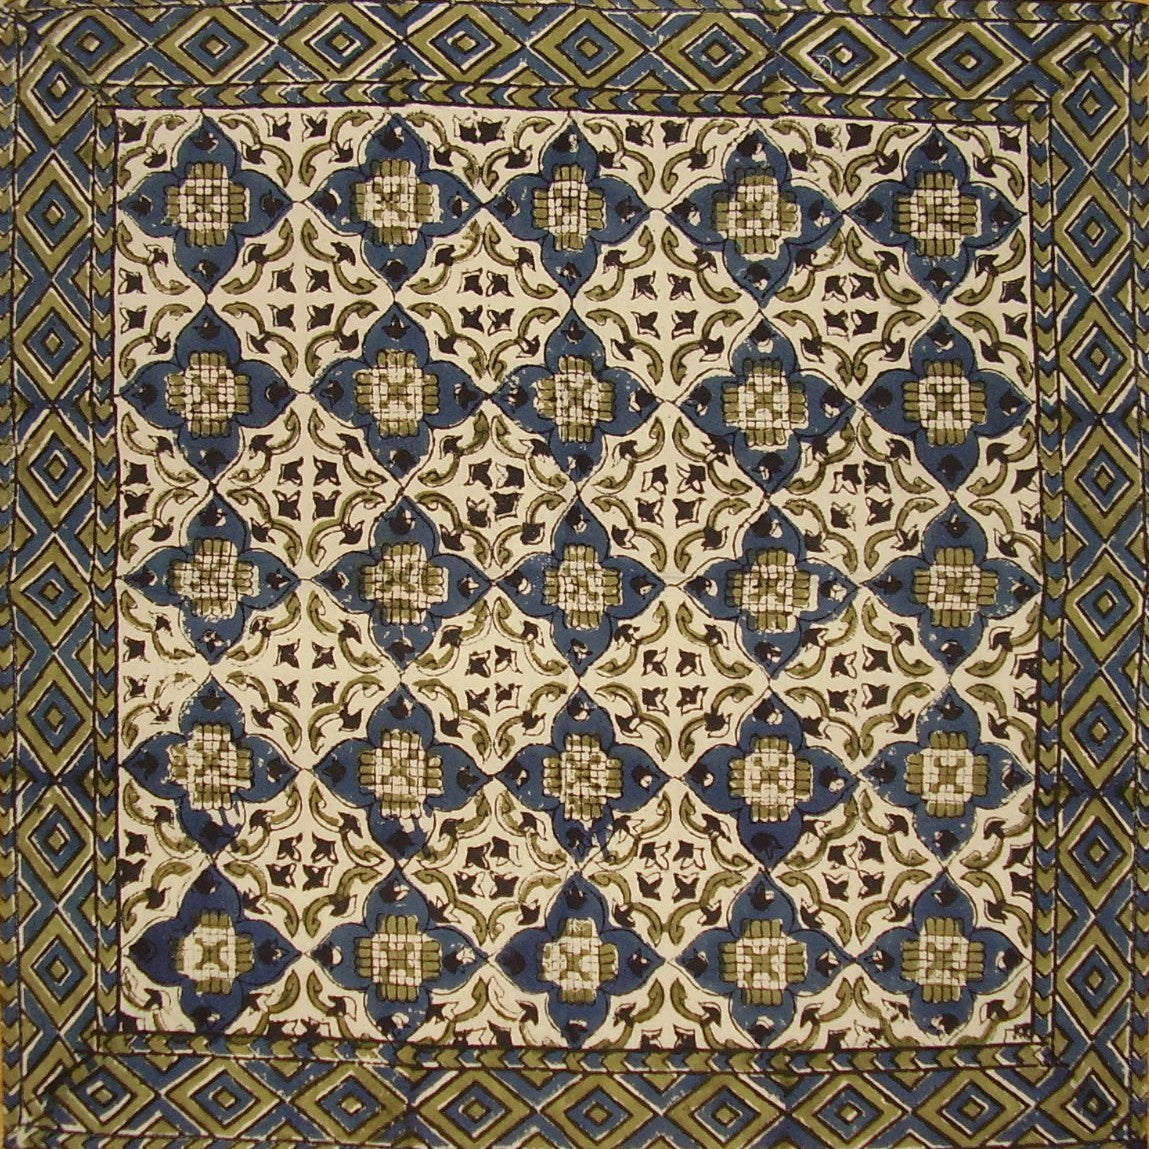 "Moroccan Block Print Cotton Table Napkin 18"" x 18""  Indigo Blue"